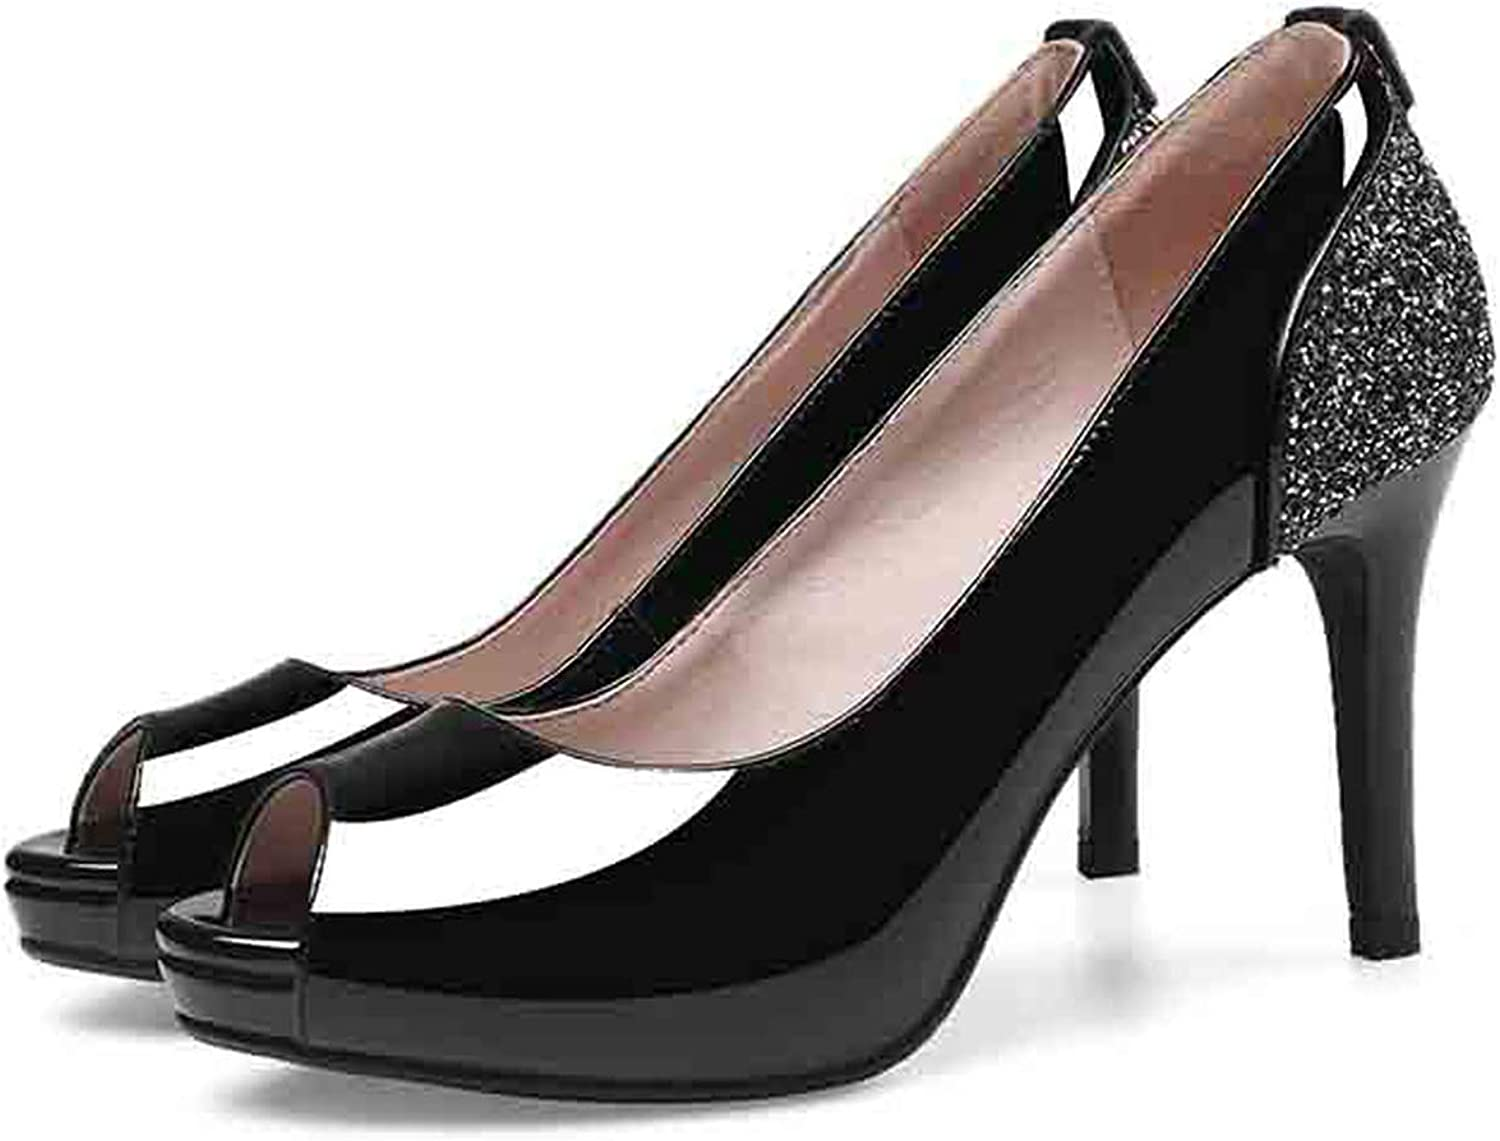 Women Pumps Cow Leather Concise Peep Toe Thin High Heel Casual Summer Women shoes US Size 3-9.